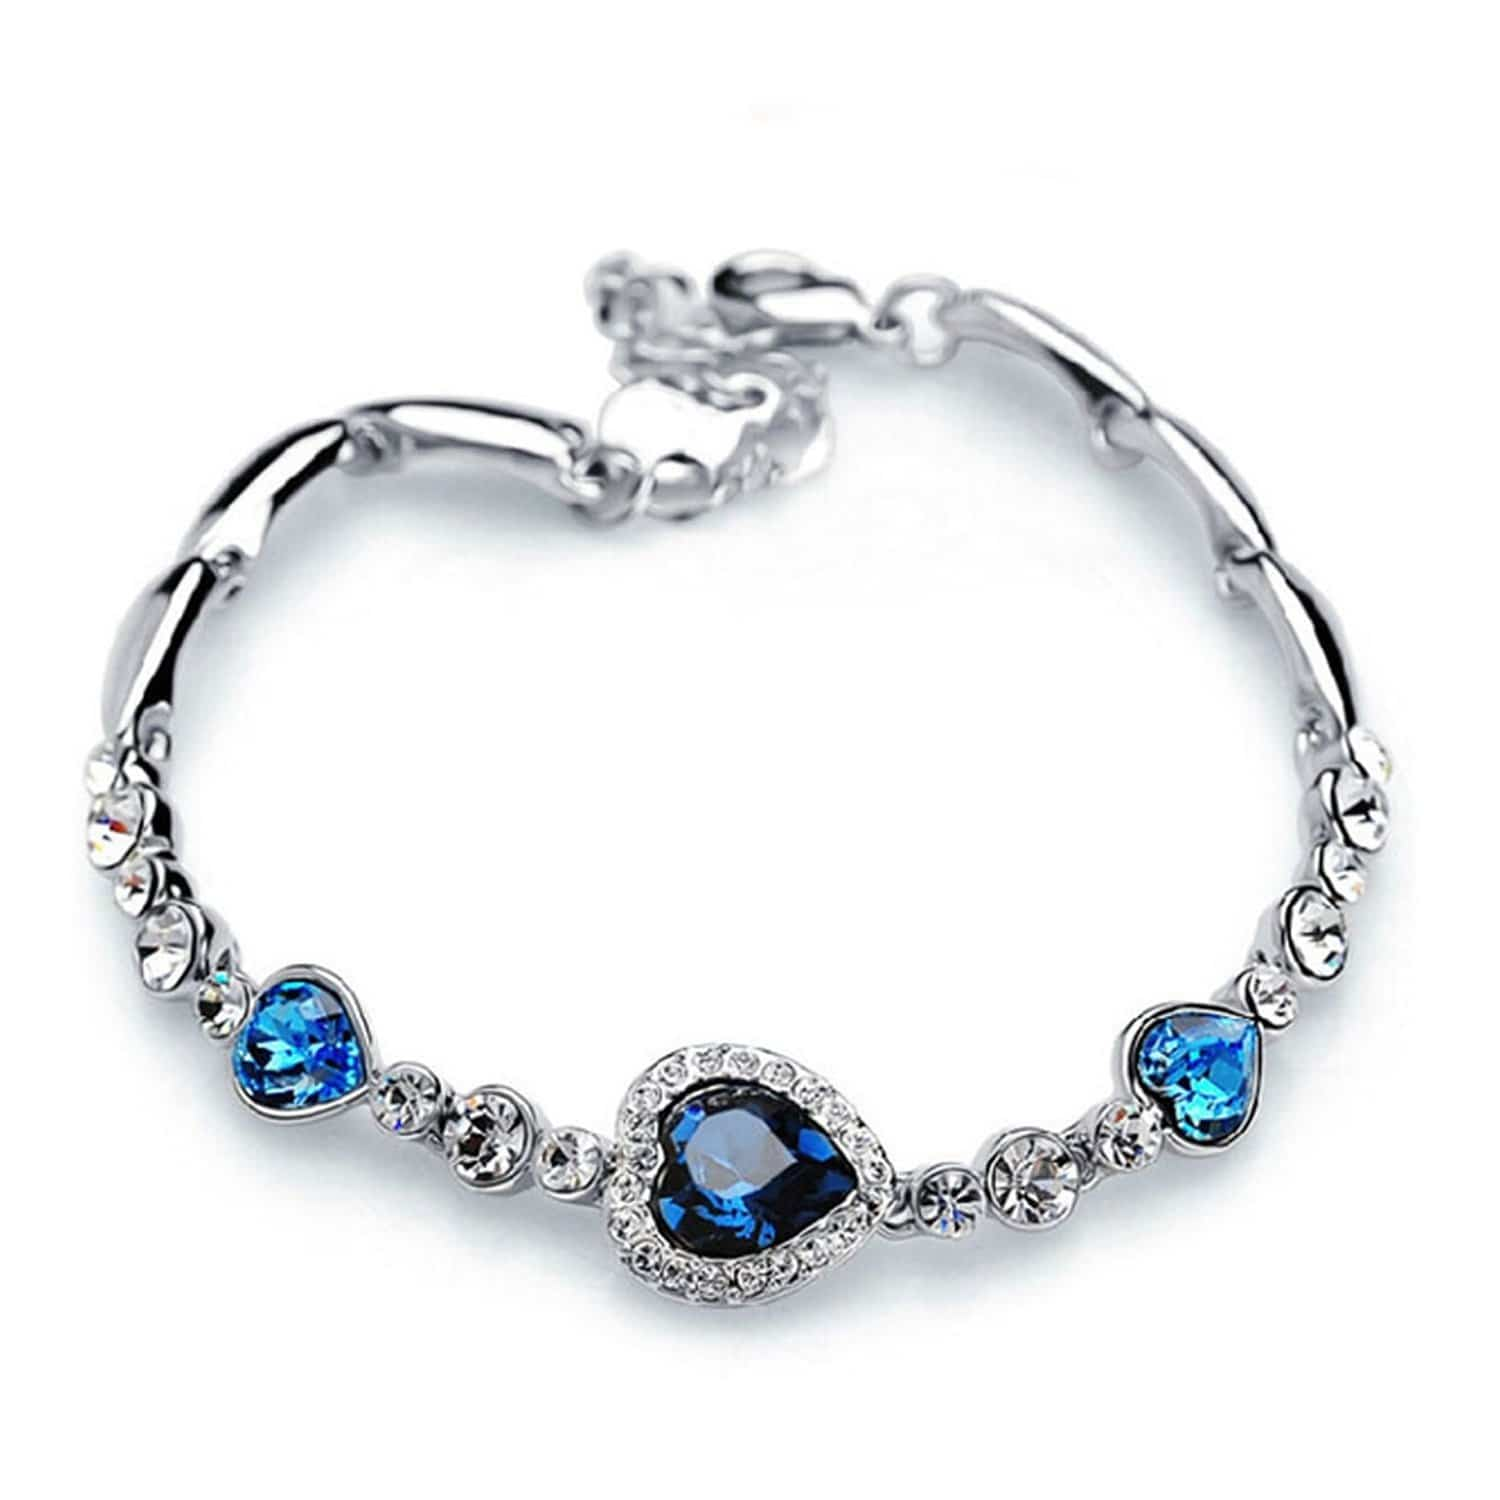 #Magnificent and #classy, that's how we describe it! #heart #bracelet #heartbracelet #romantic #gift #giftsforher #giftingideas #giftinggoals #love #youngandforever #crazeemania #youngandforeverromanticacollection